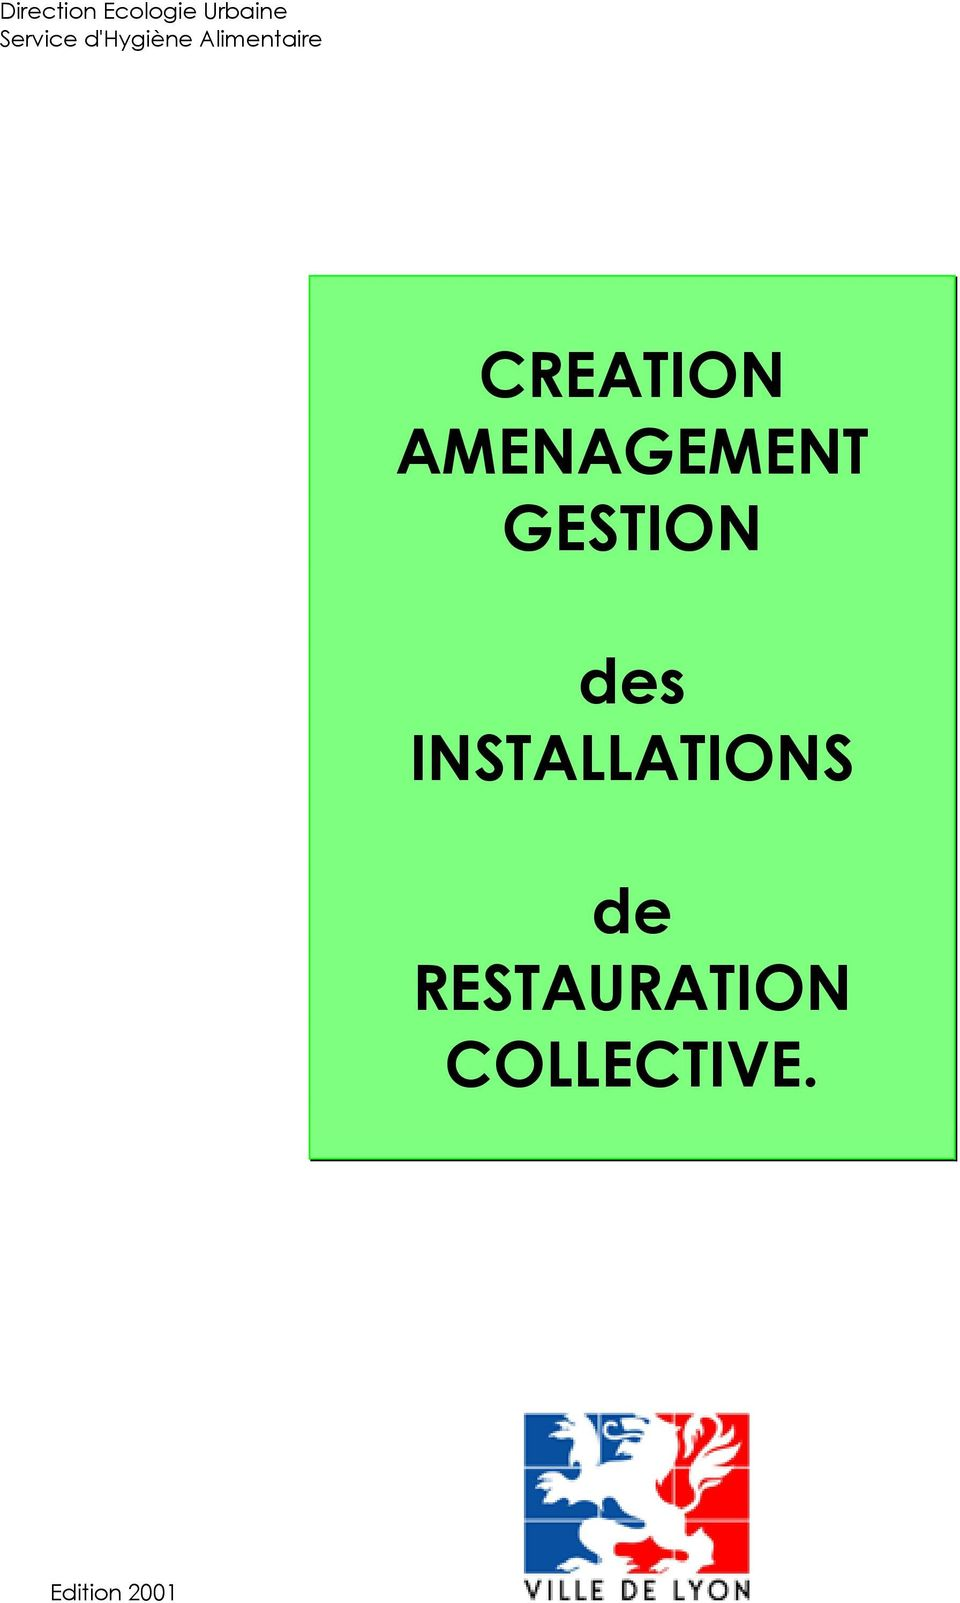 AMENAGEMENT GESTION des